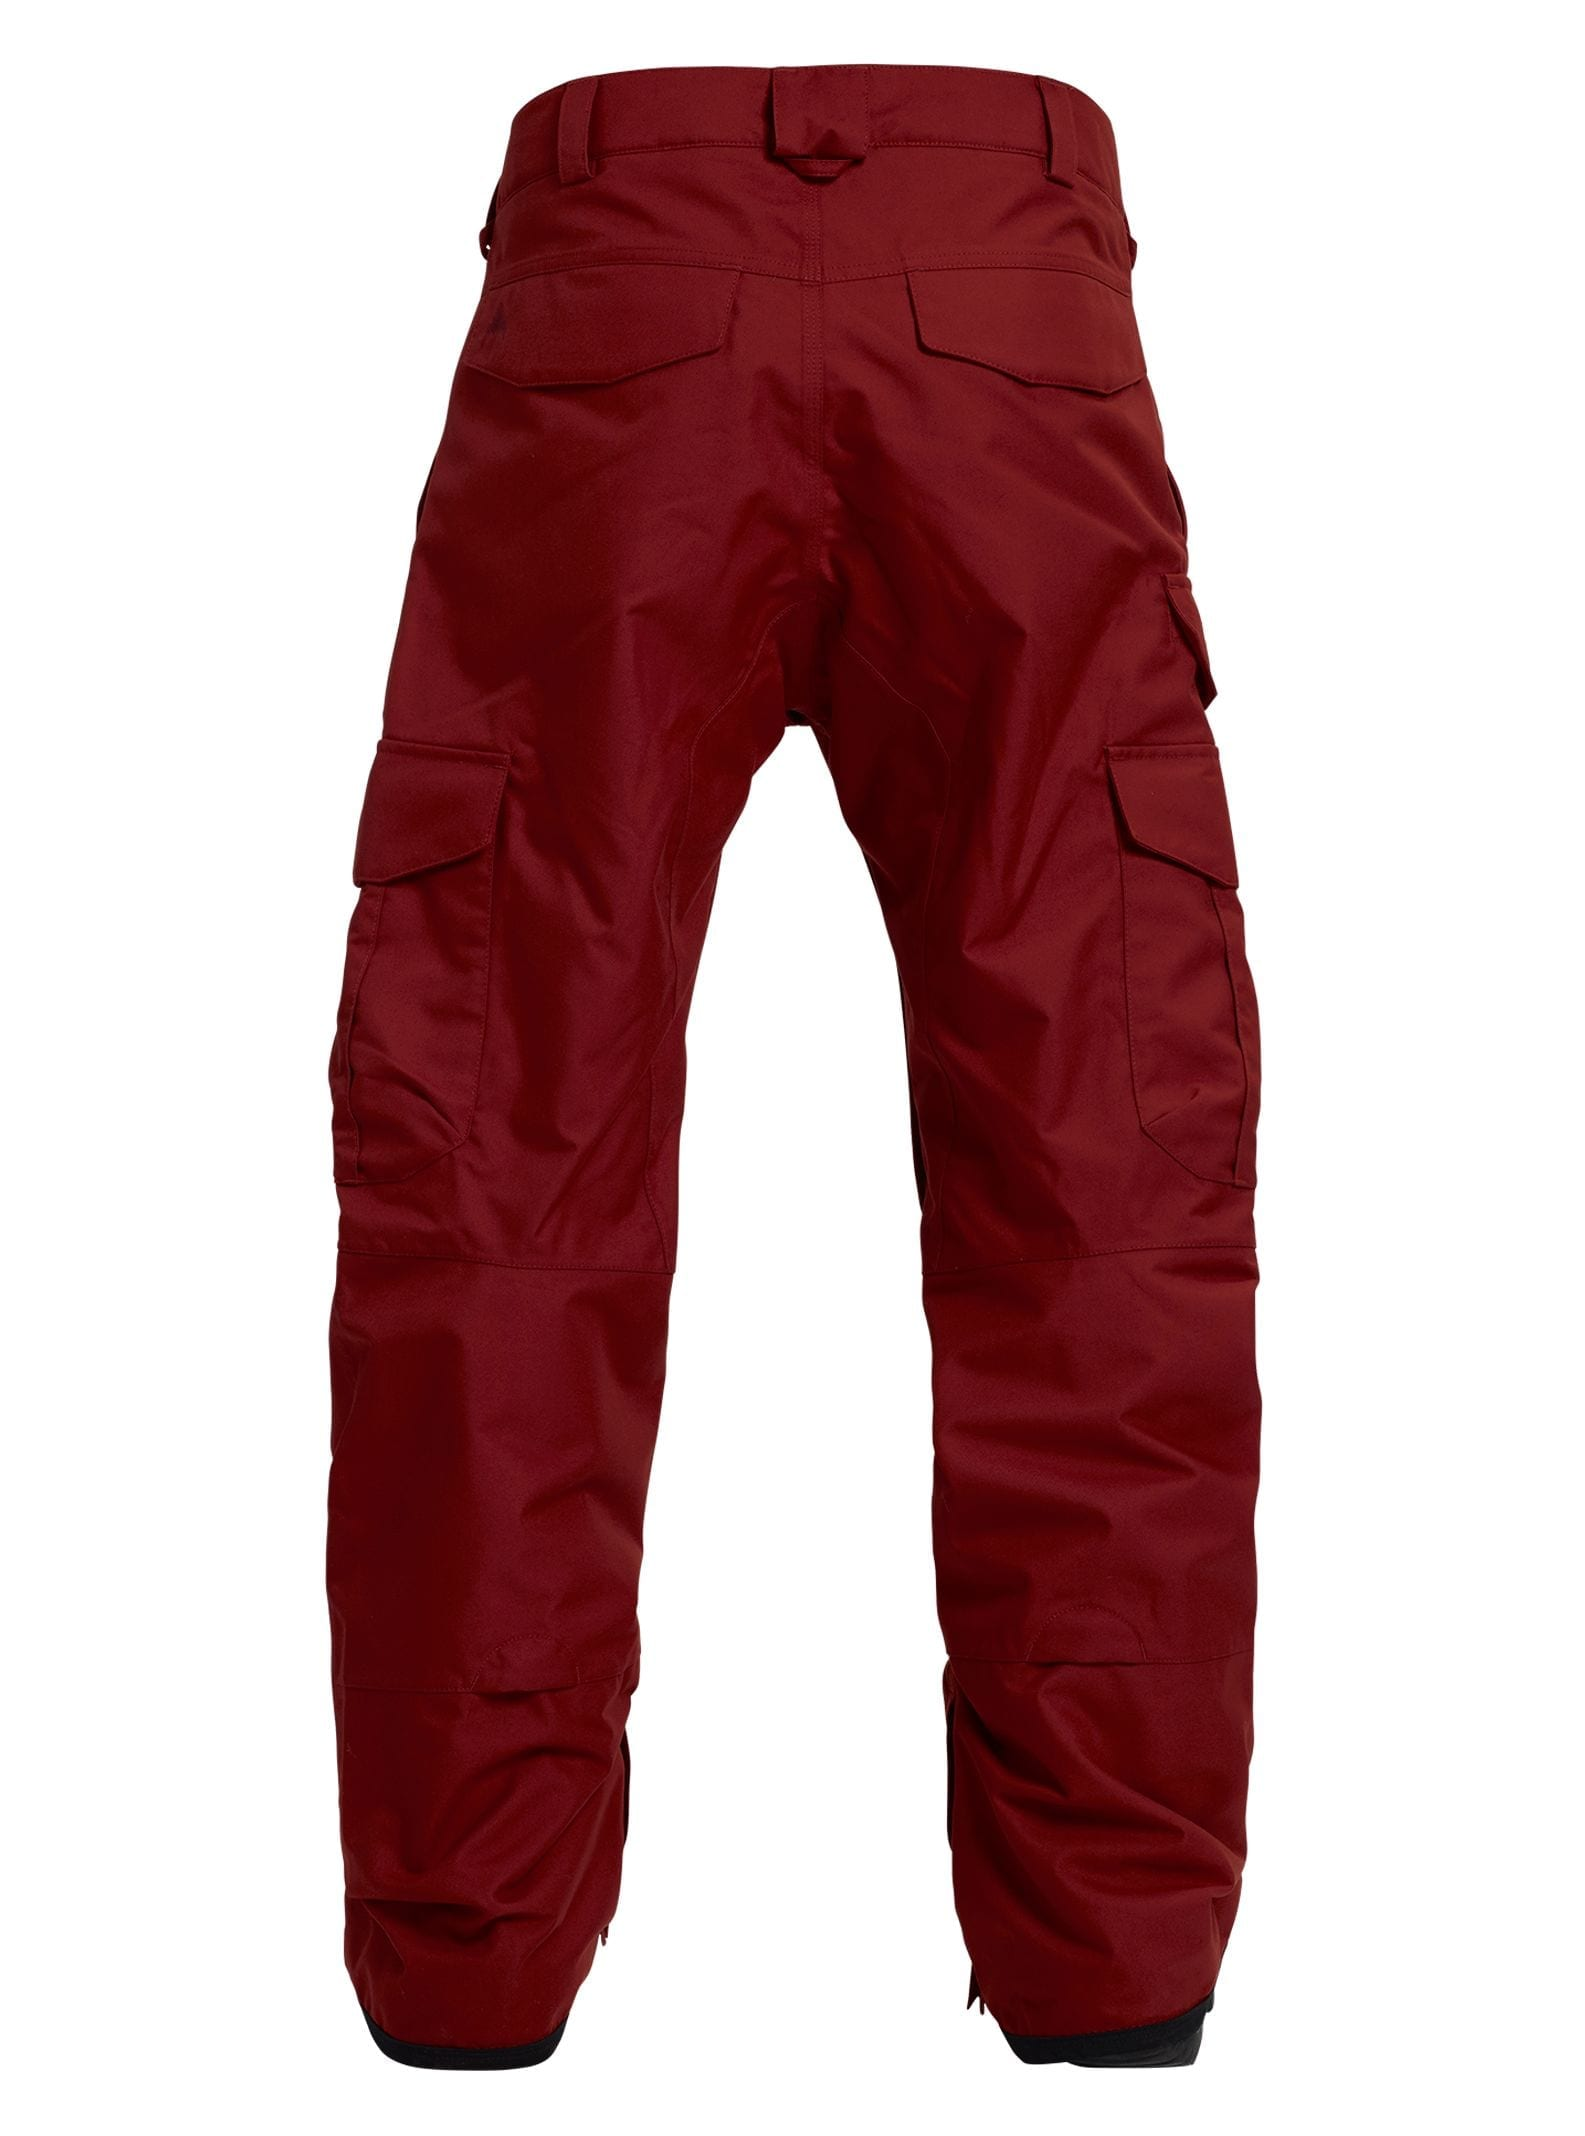 Burton Men_s Cargo Pant, Red, 169.99